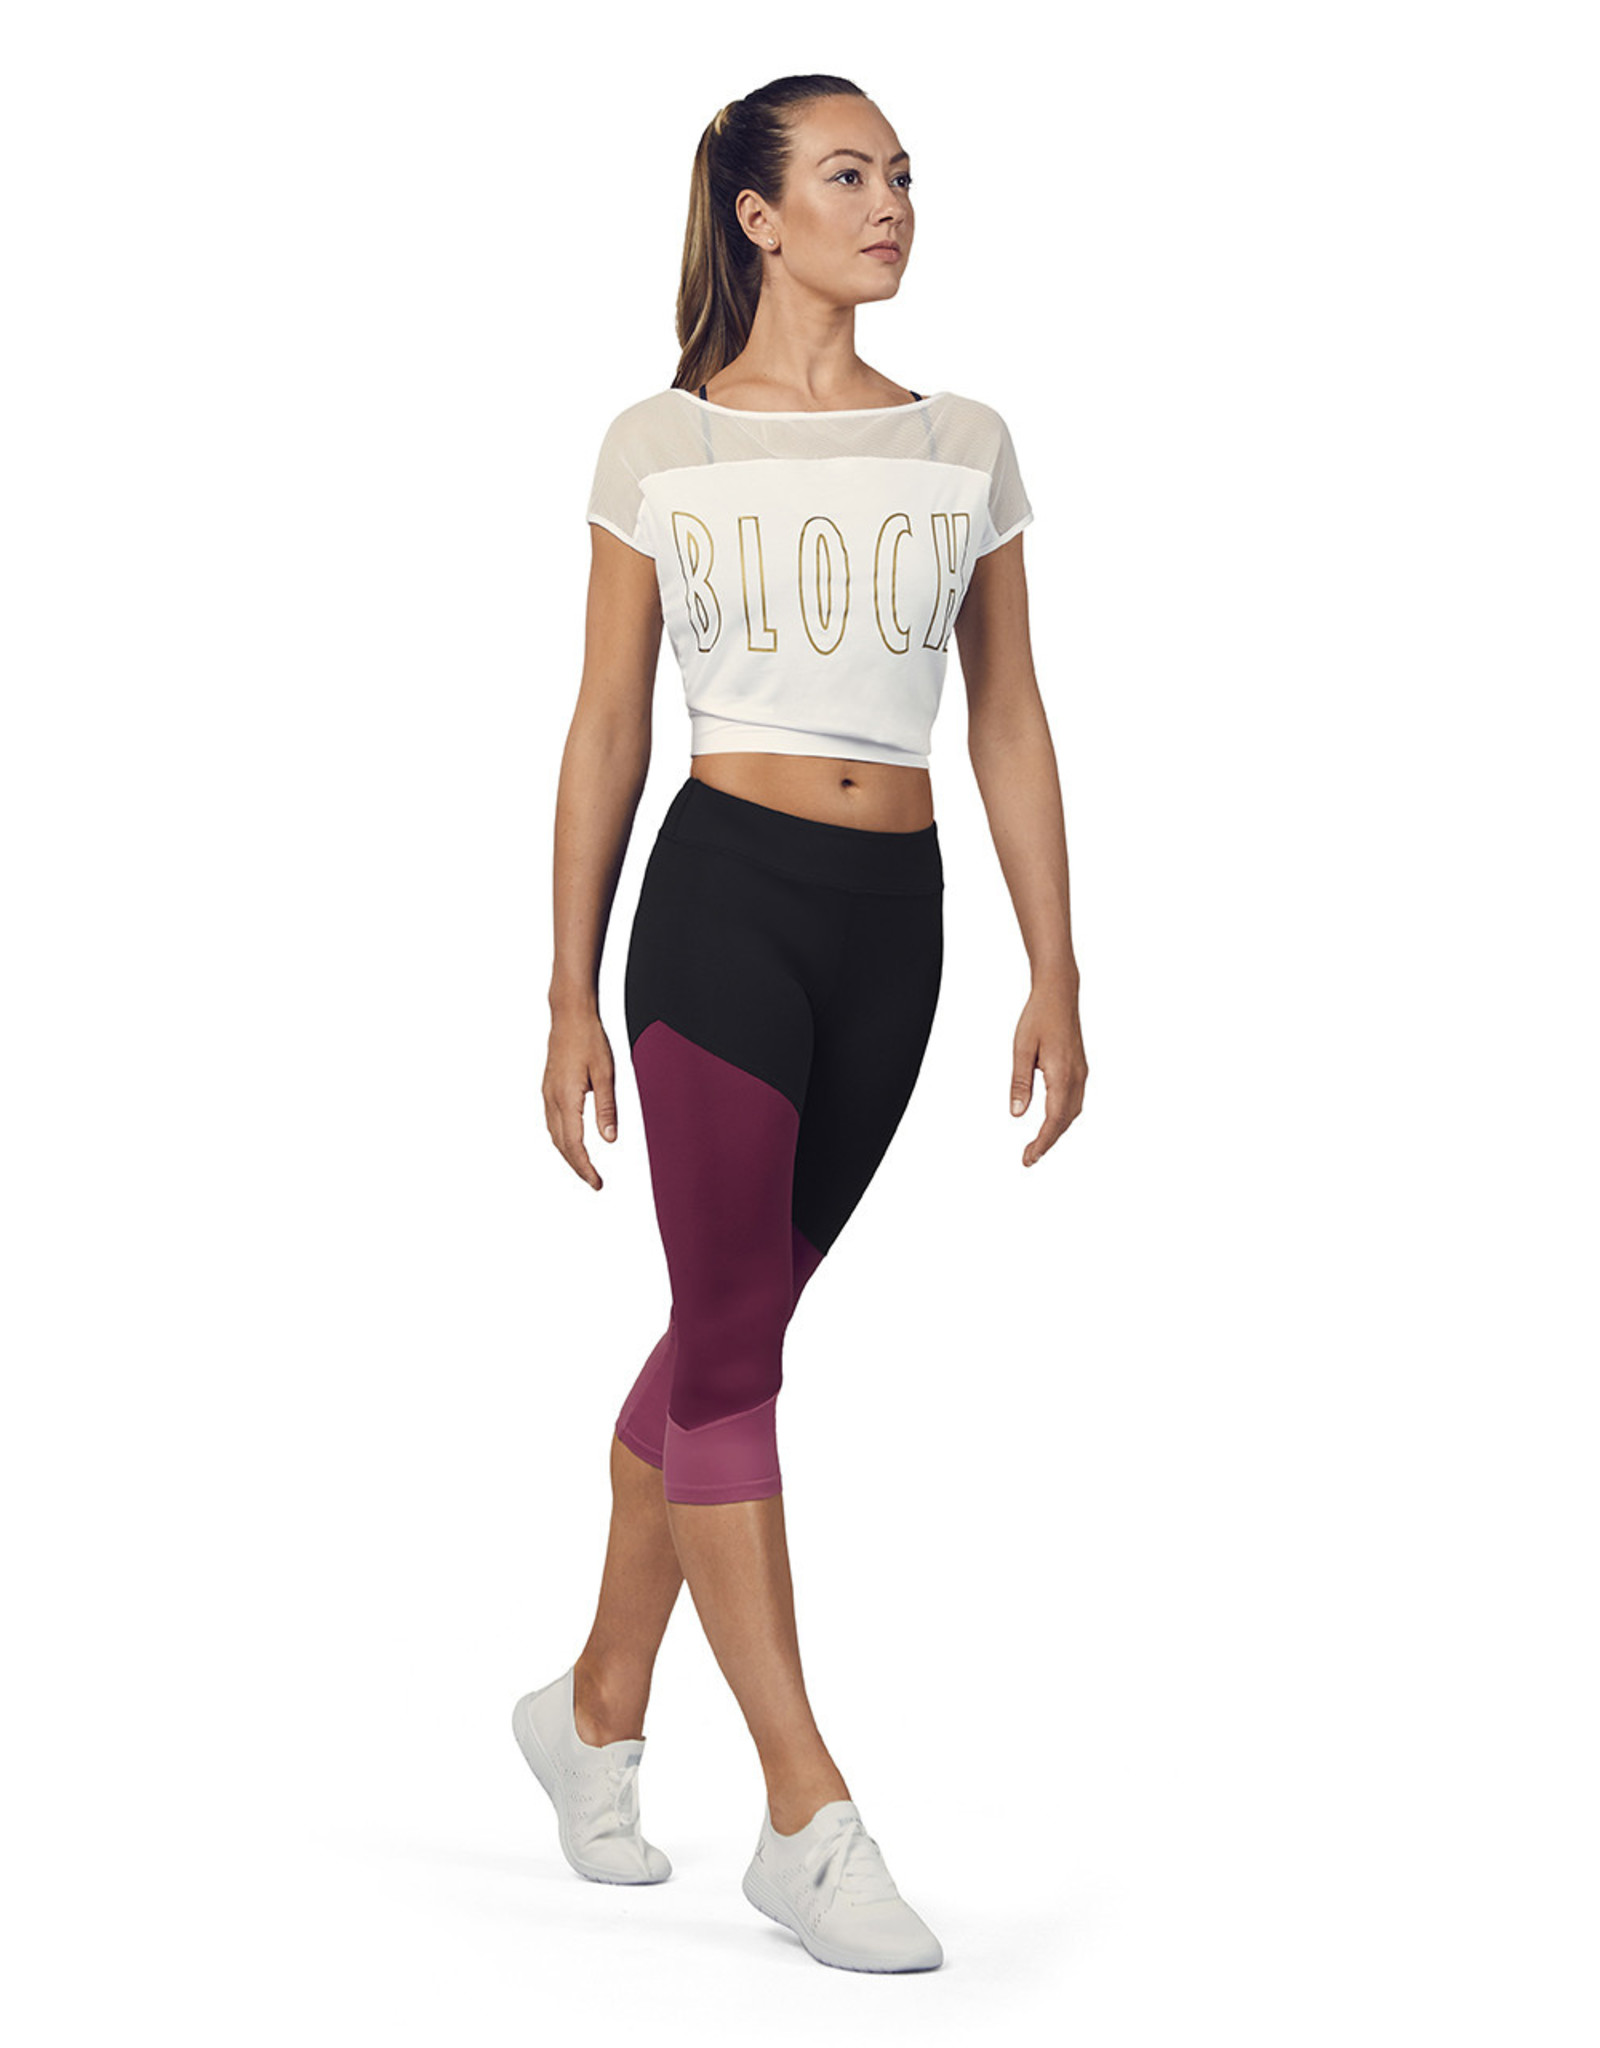 Bloch / Mirella Logo Crop Mesh Tee (FT5206)